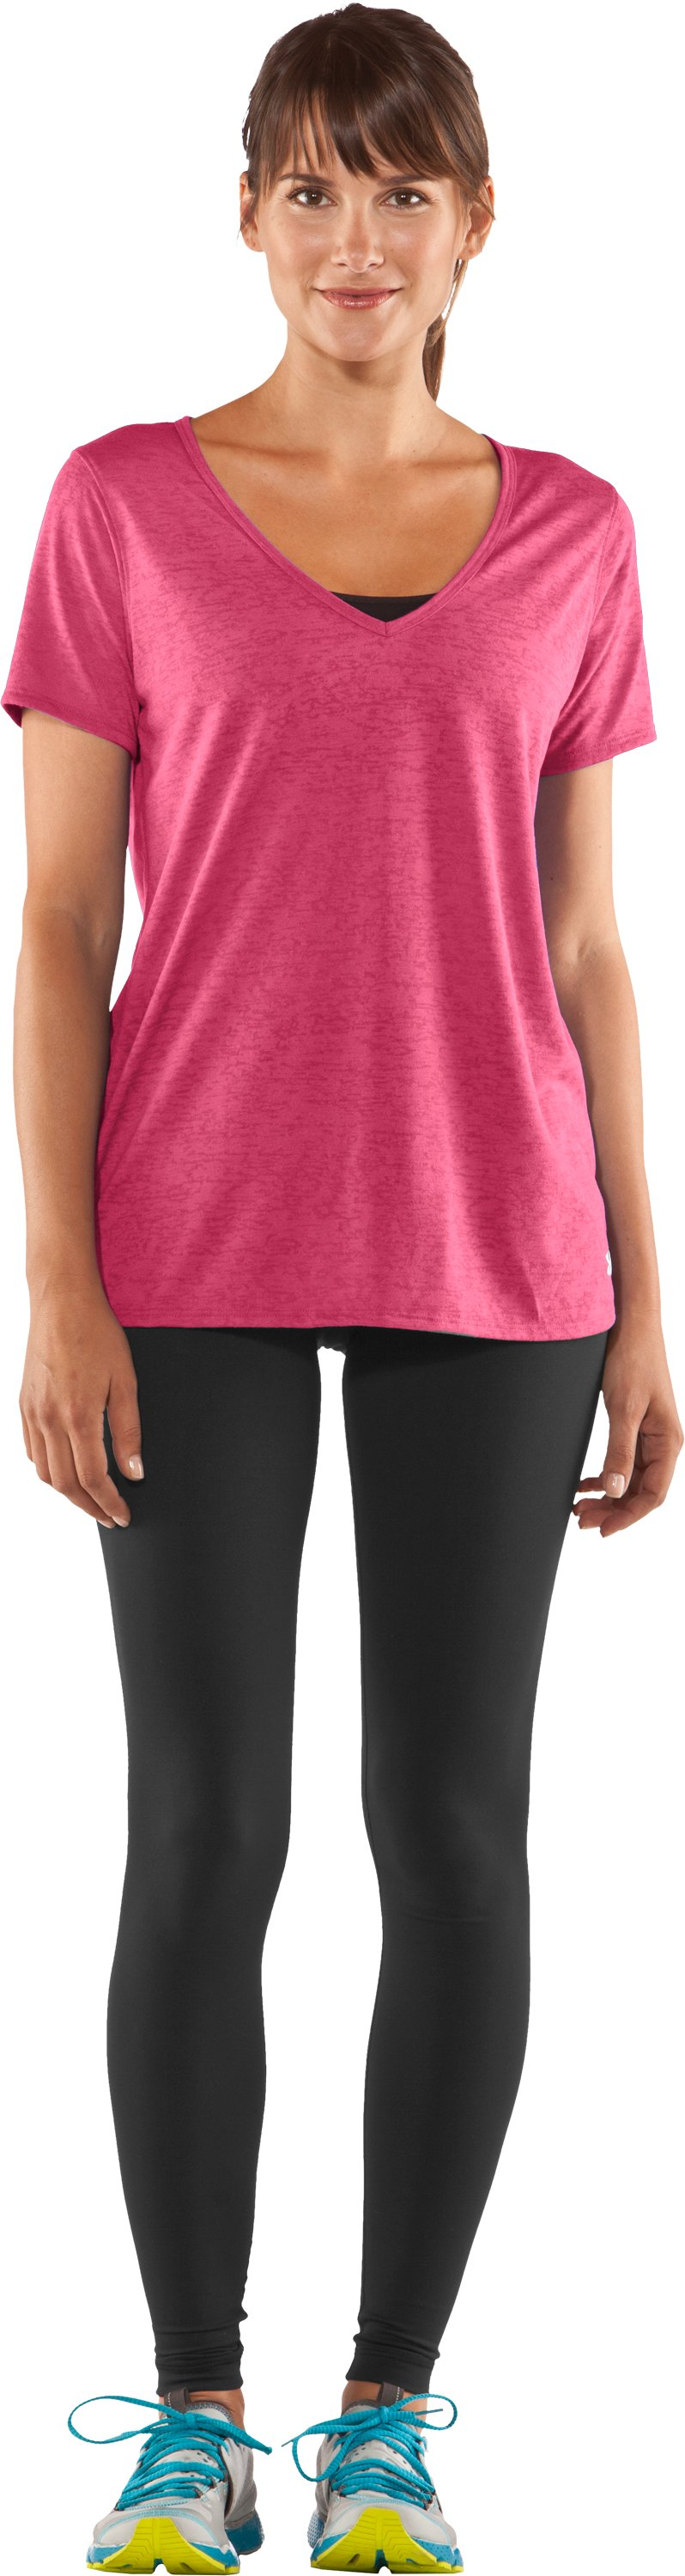 Women's Achieve Burnout T-Shirt, Ultra, Front